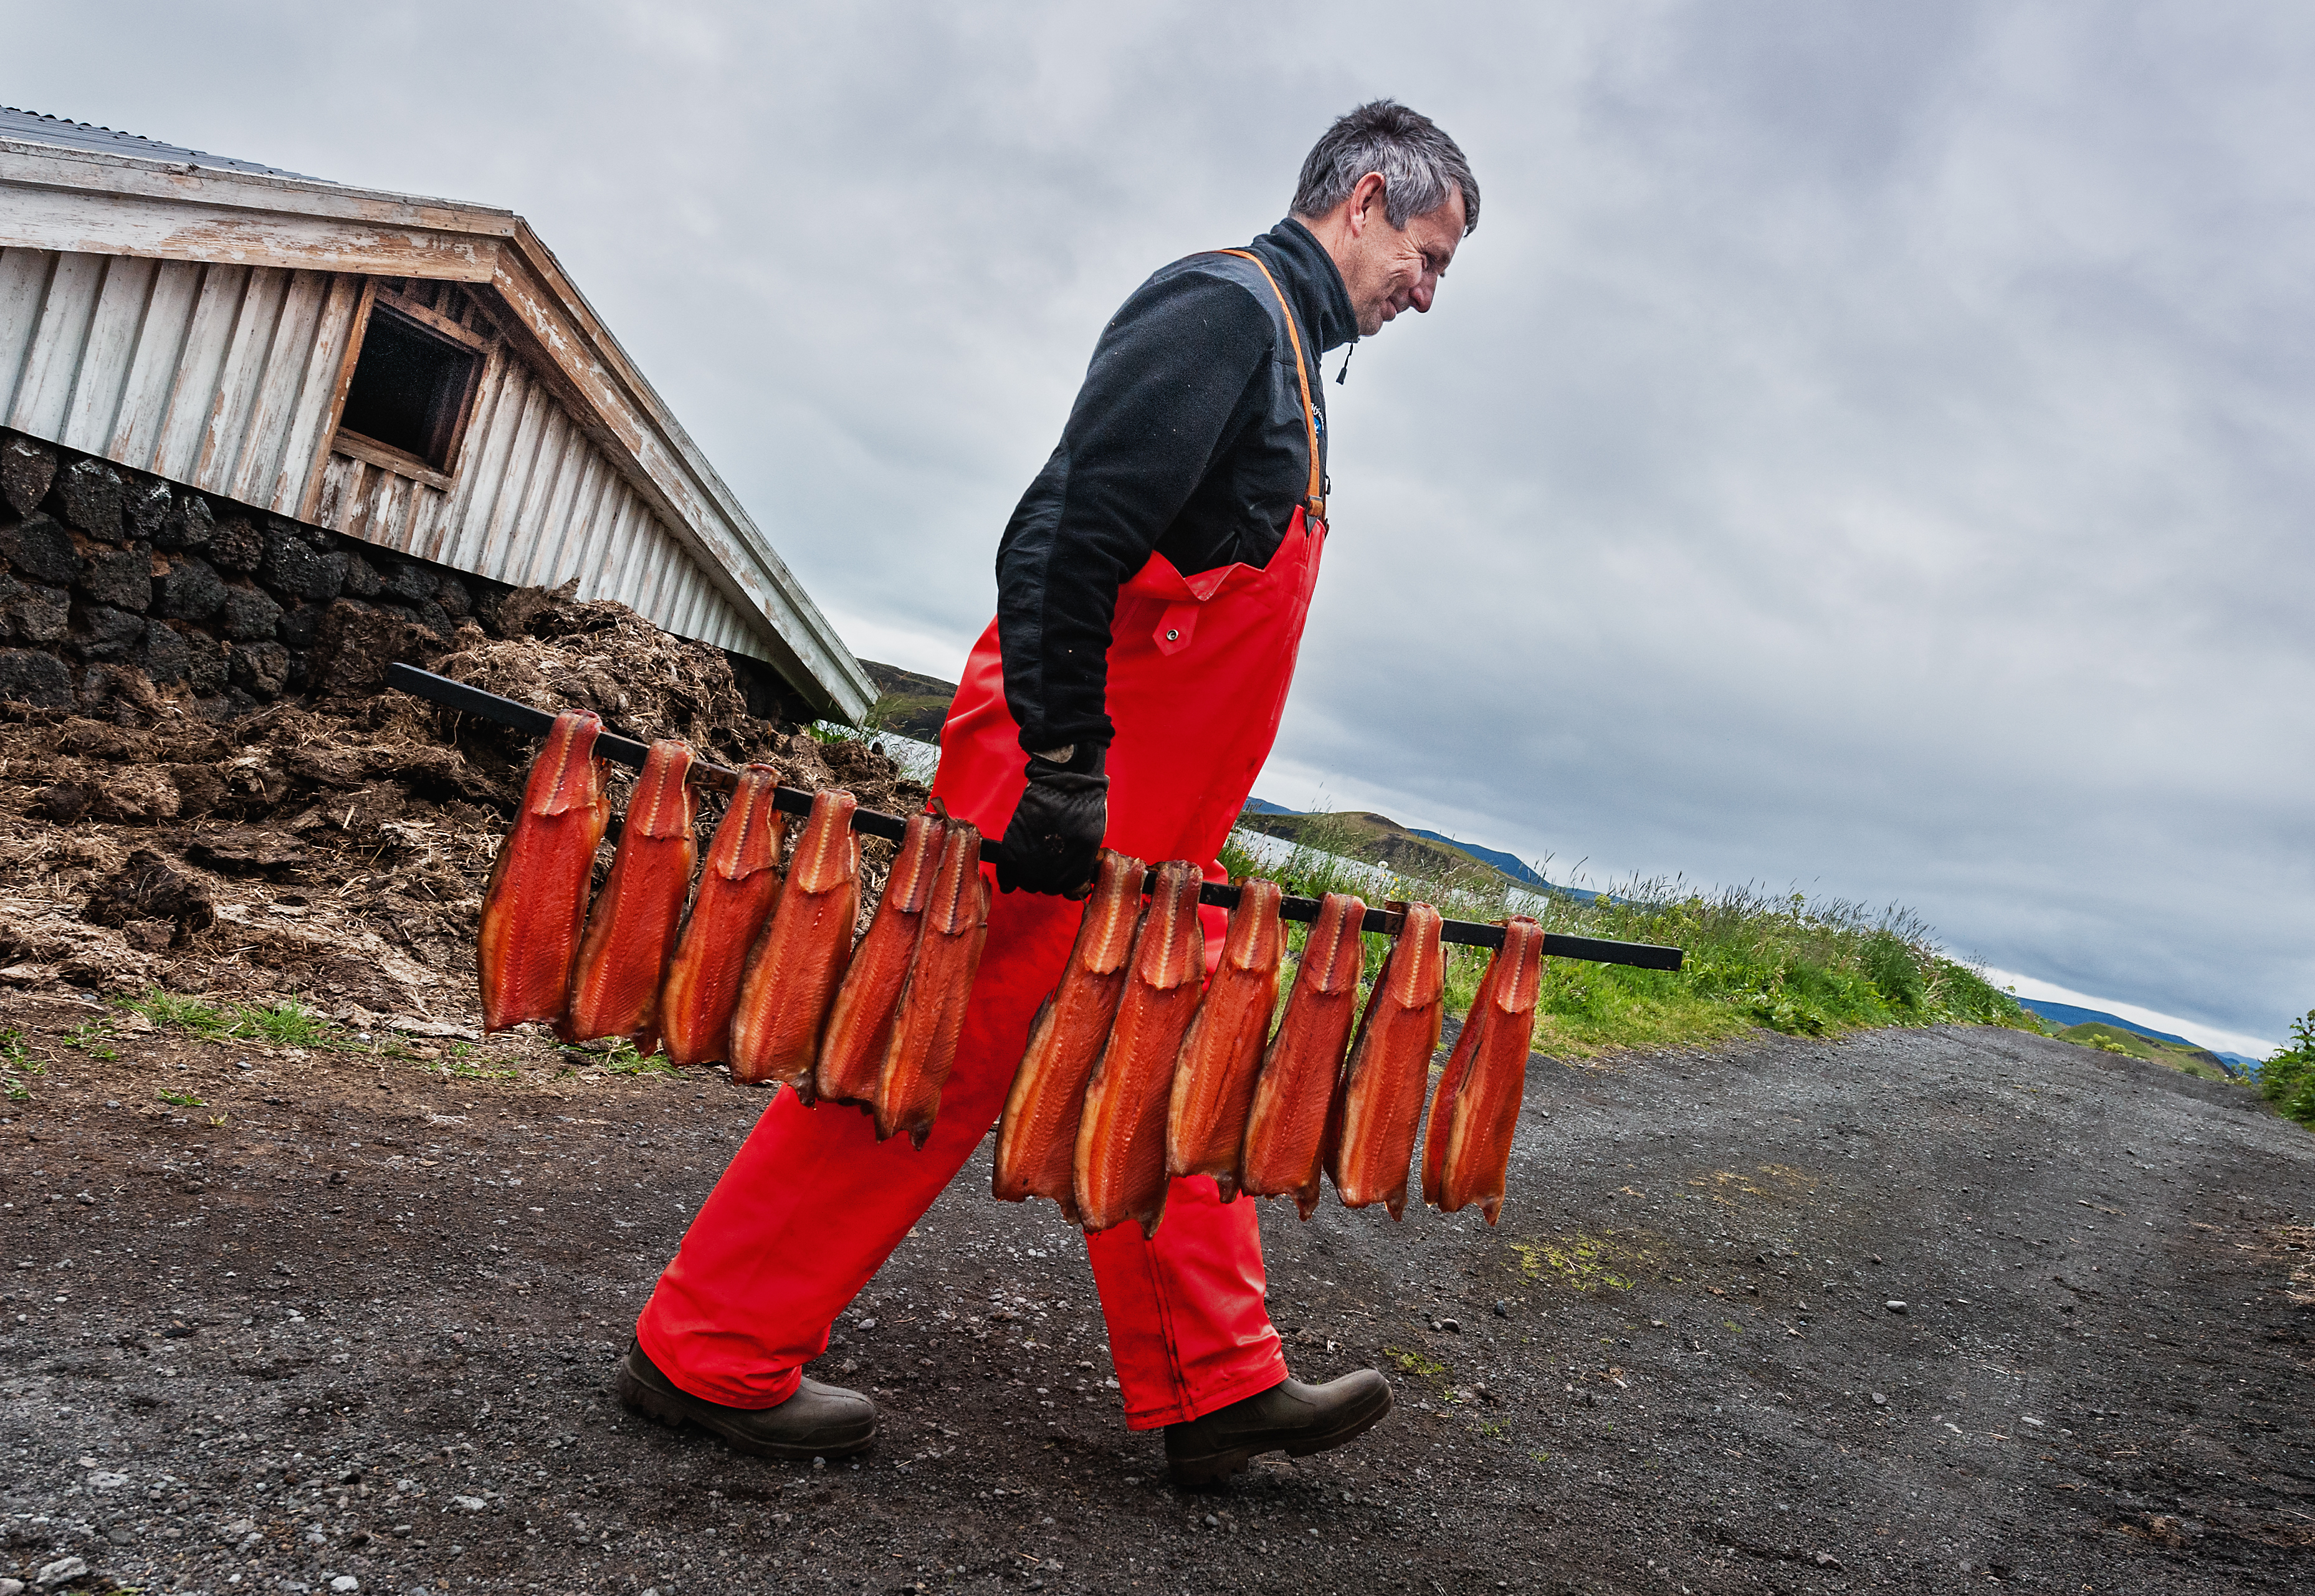 On assignment for Tour Operator Katla Travel in Iceland